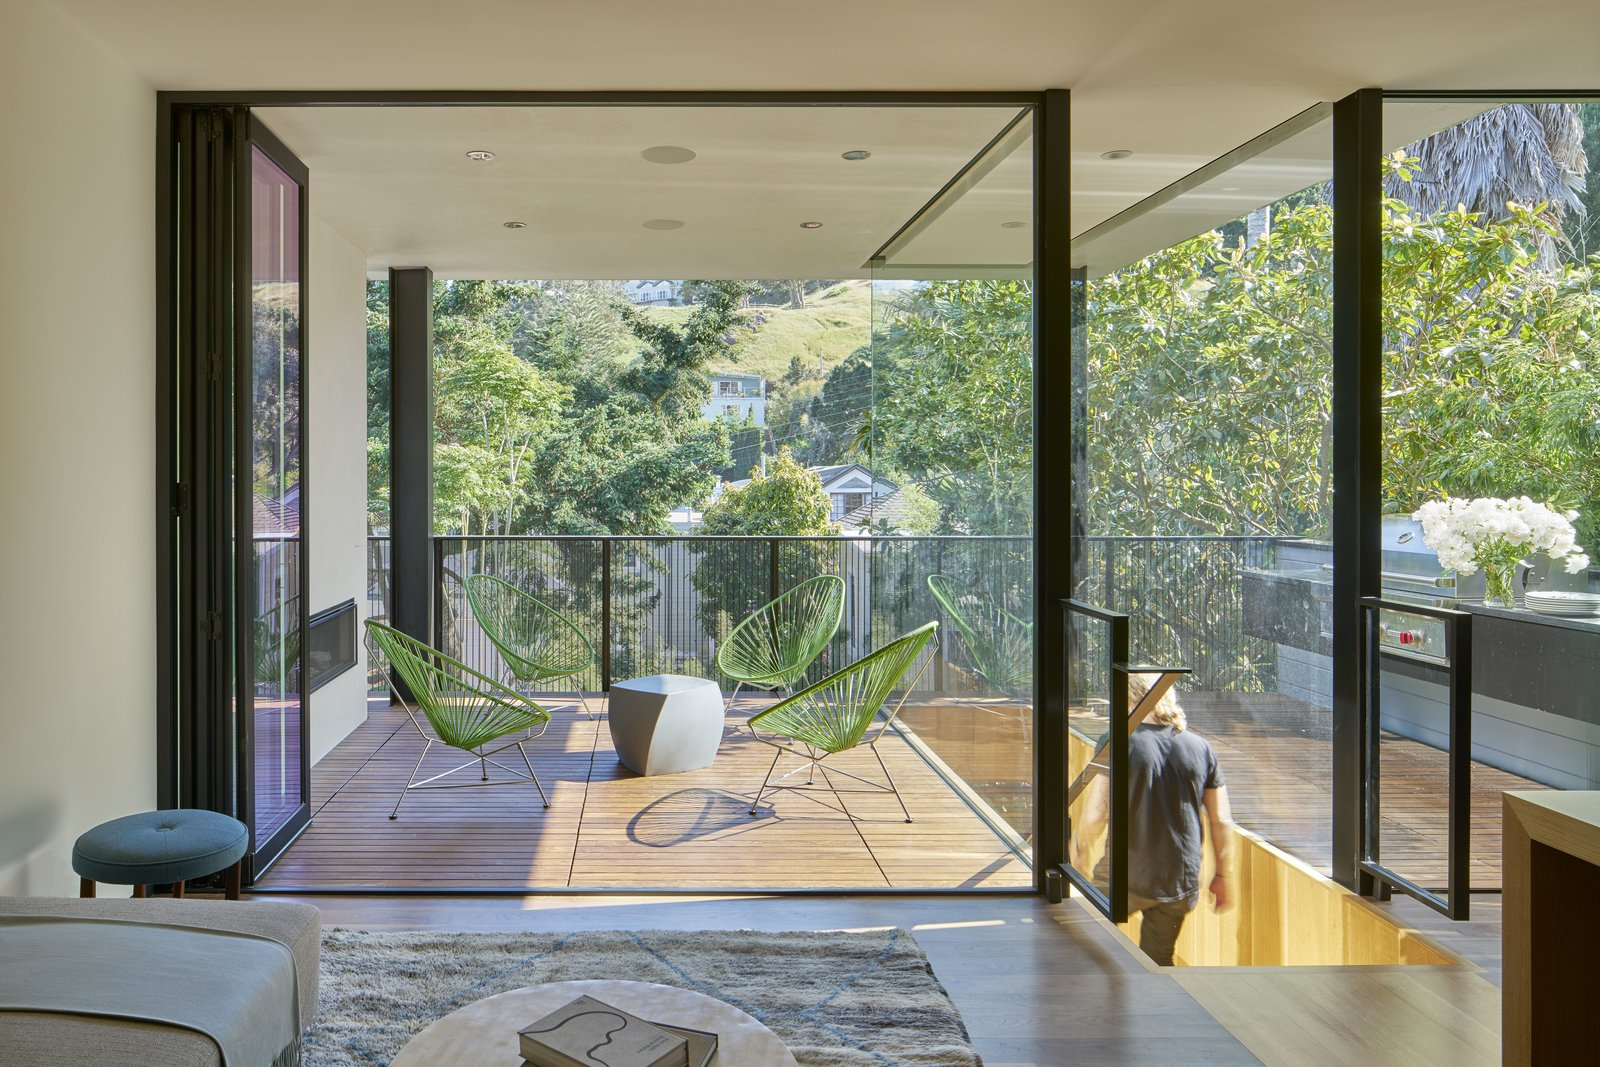 Tagged: Outdoor, Wood Patio, Porch, Deck, and Metal Fences, Wall.  29th Street Residence by Schwartz and Architecture